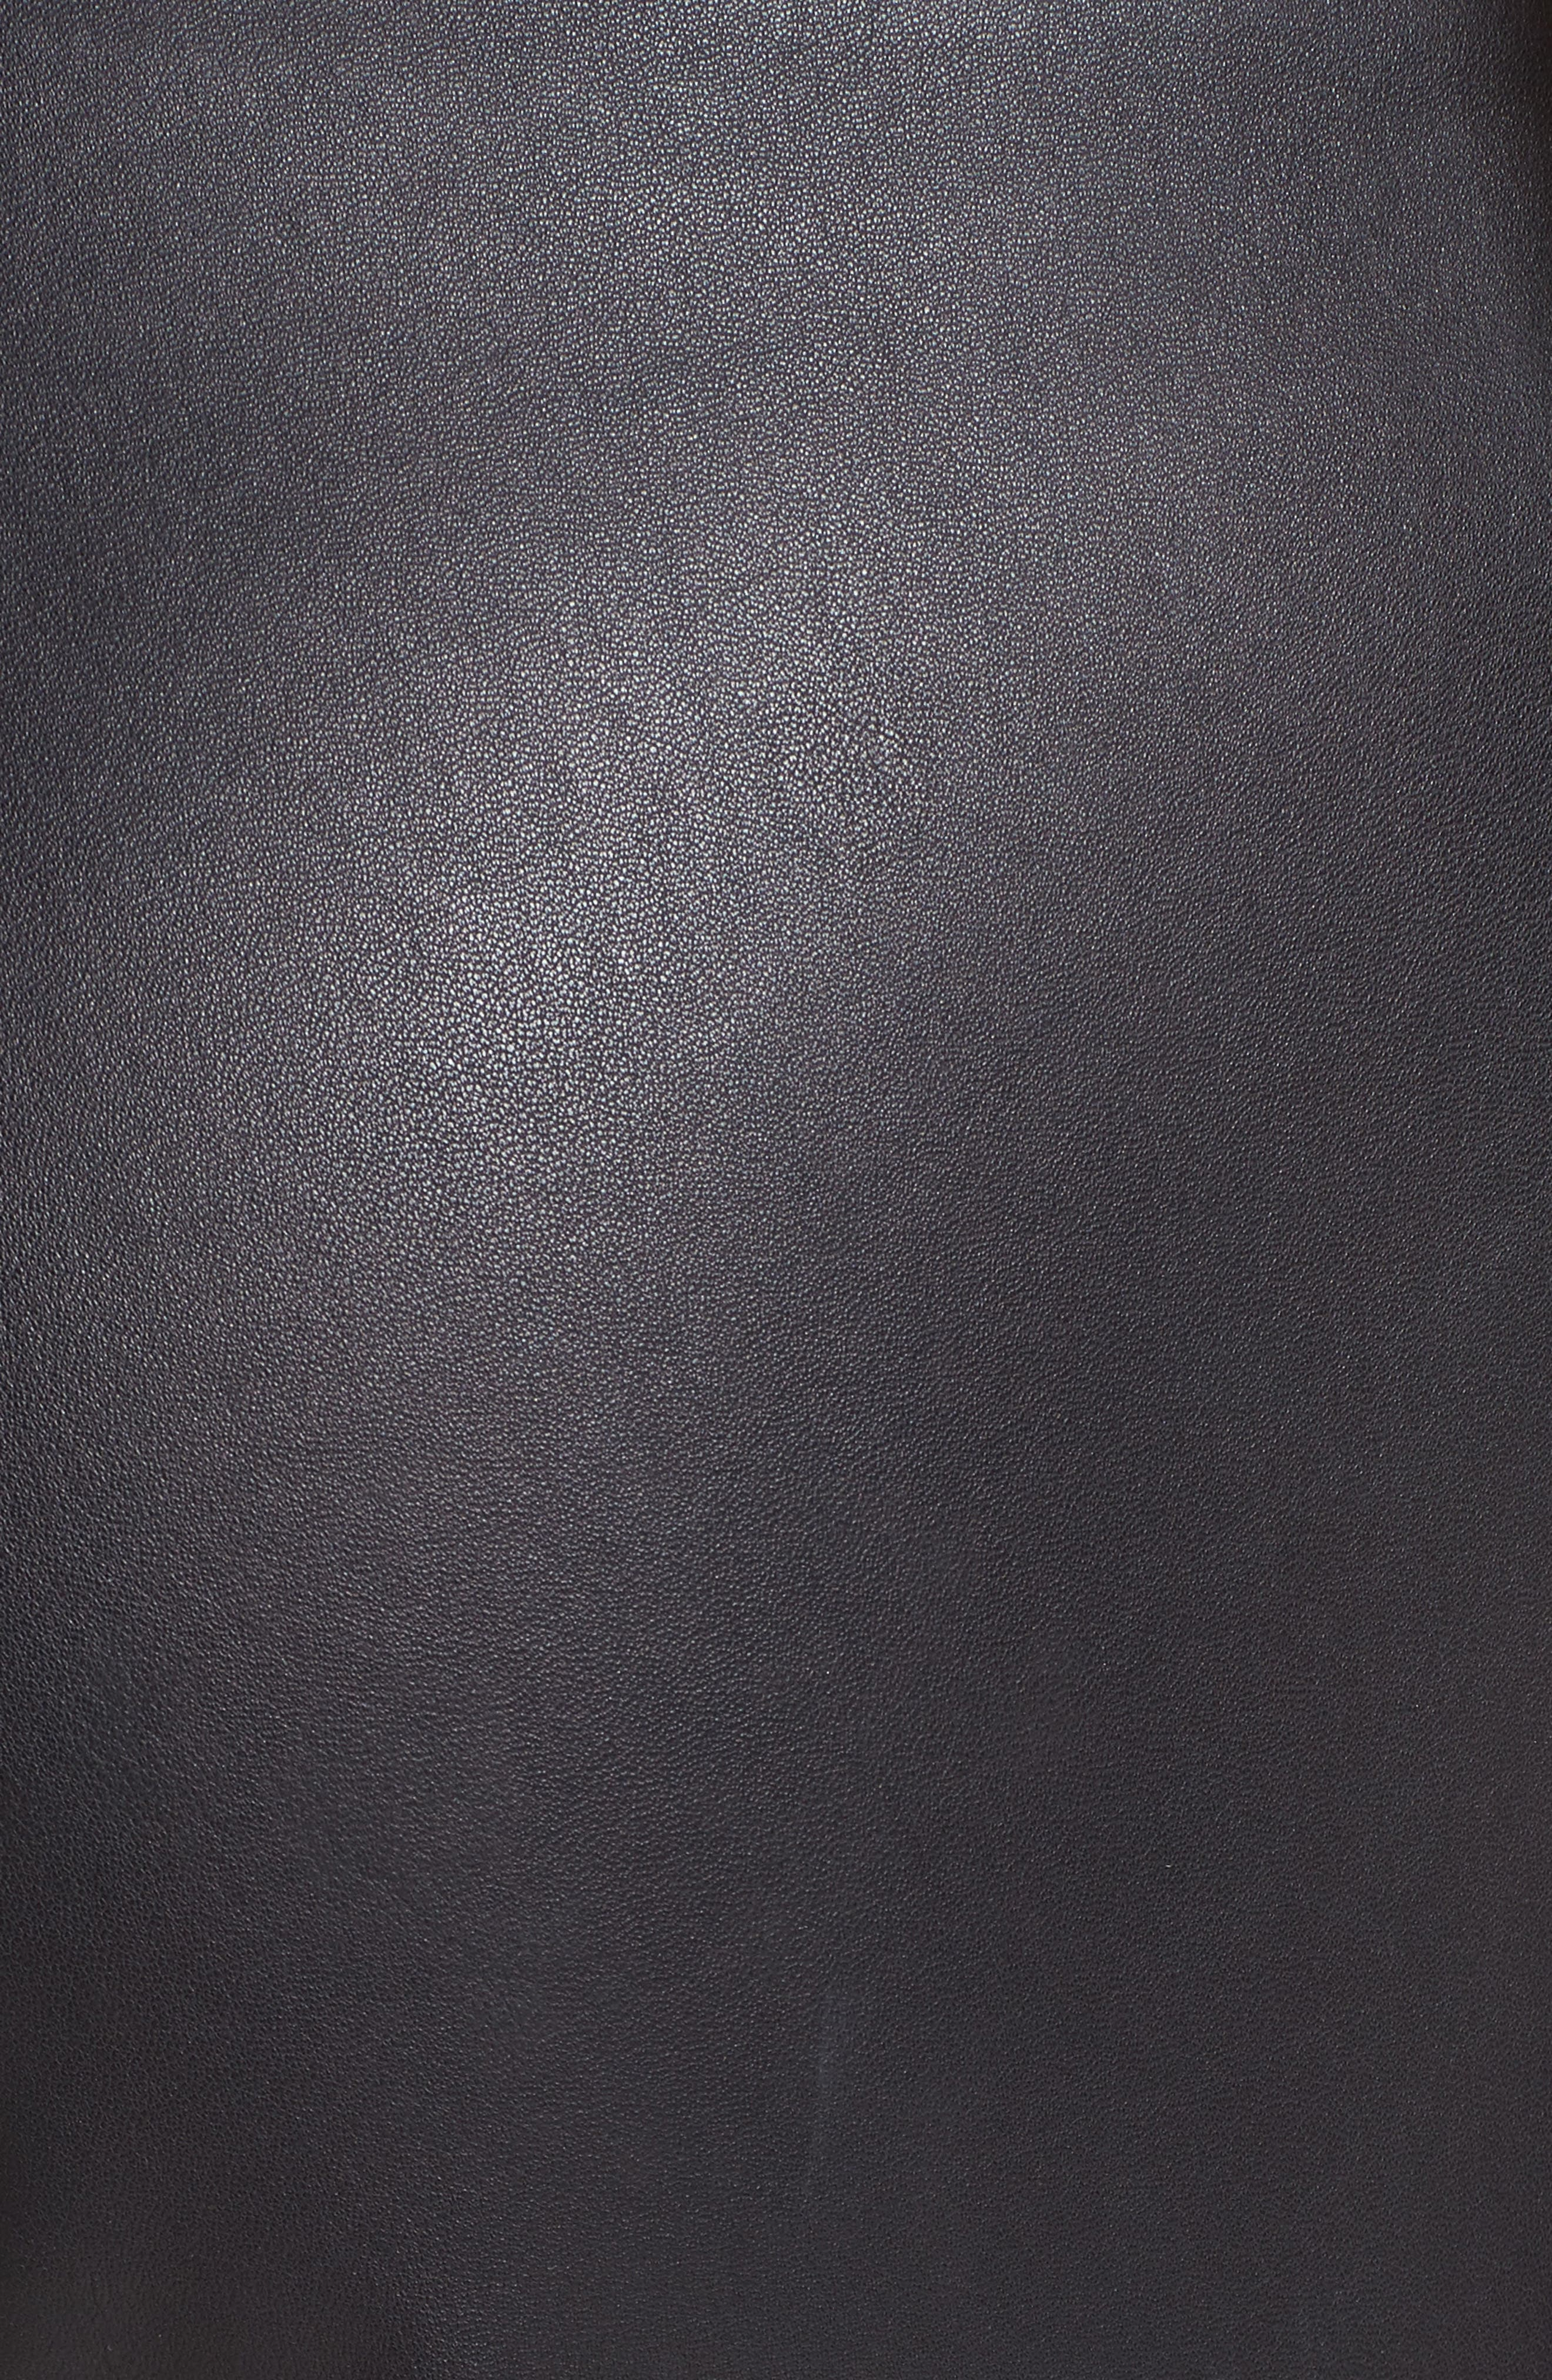 Side Zip Stretch Leather Leggings,                             Alternate thumbnail 5, color,                             001